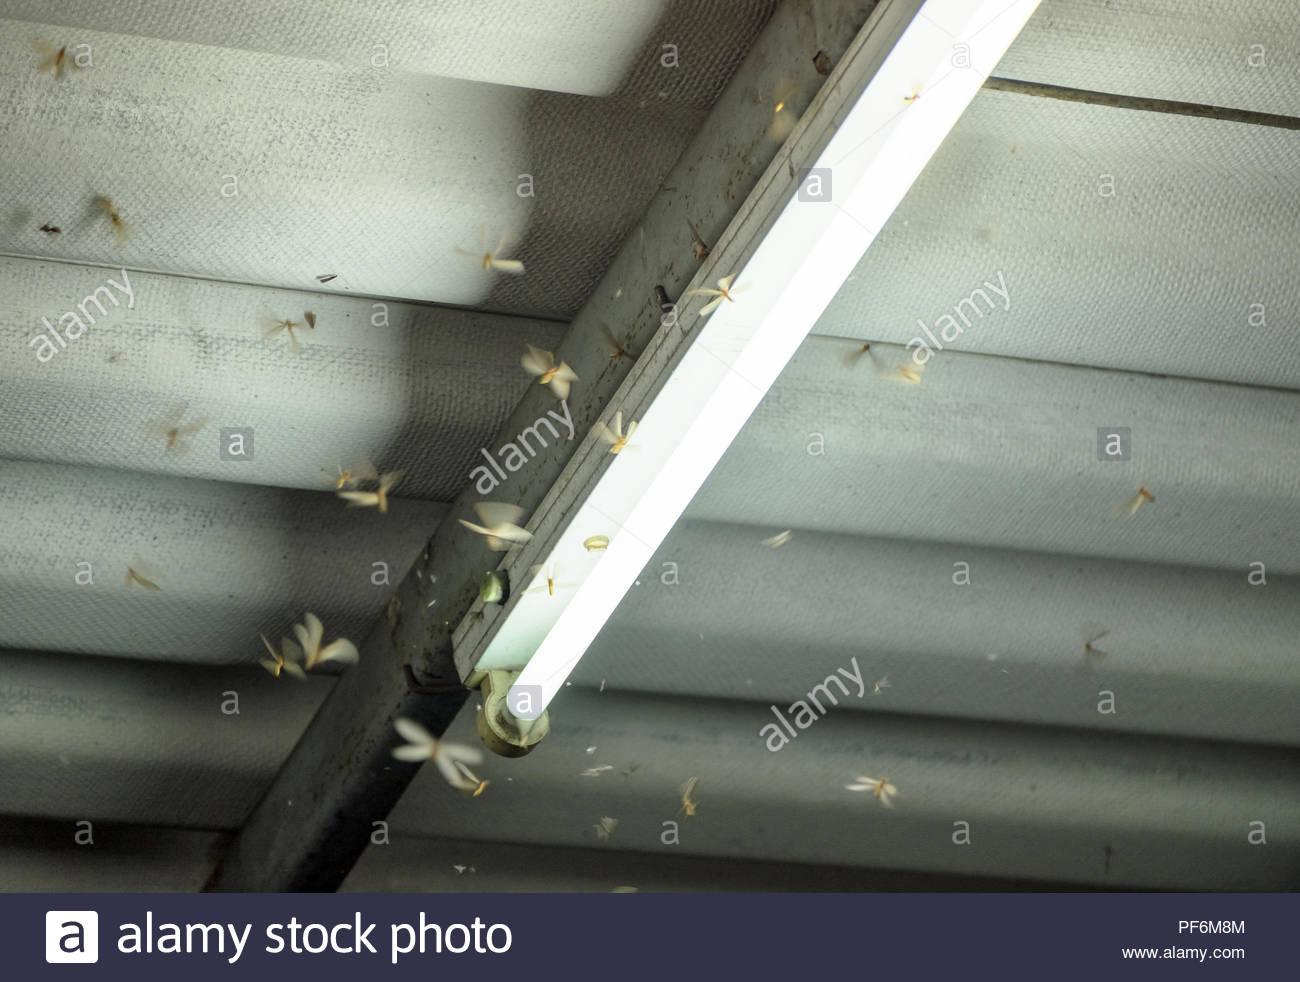 Termite crowd flying around lamp lighting front house in damp weather - Stock Image